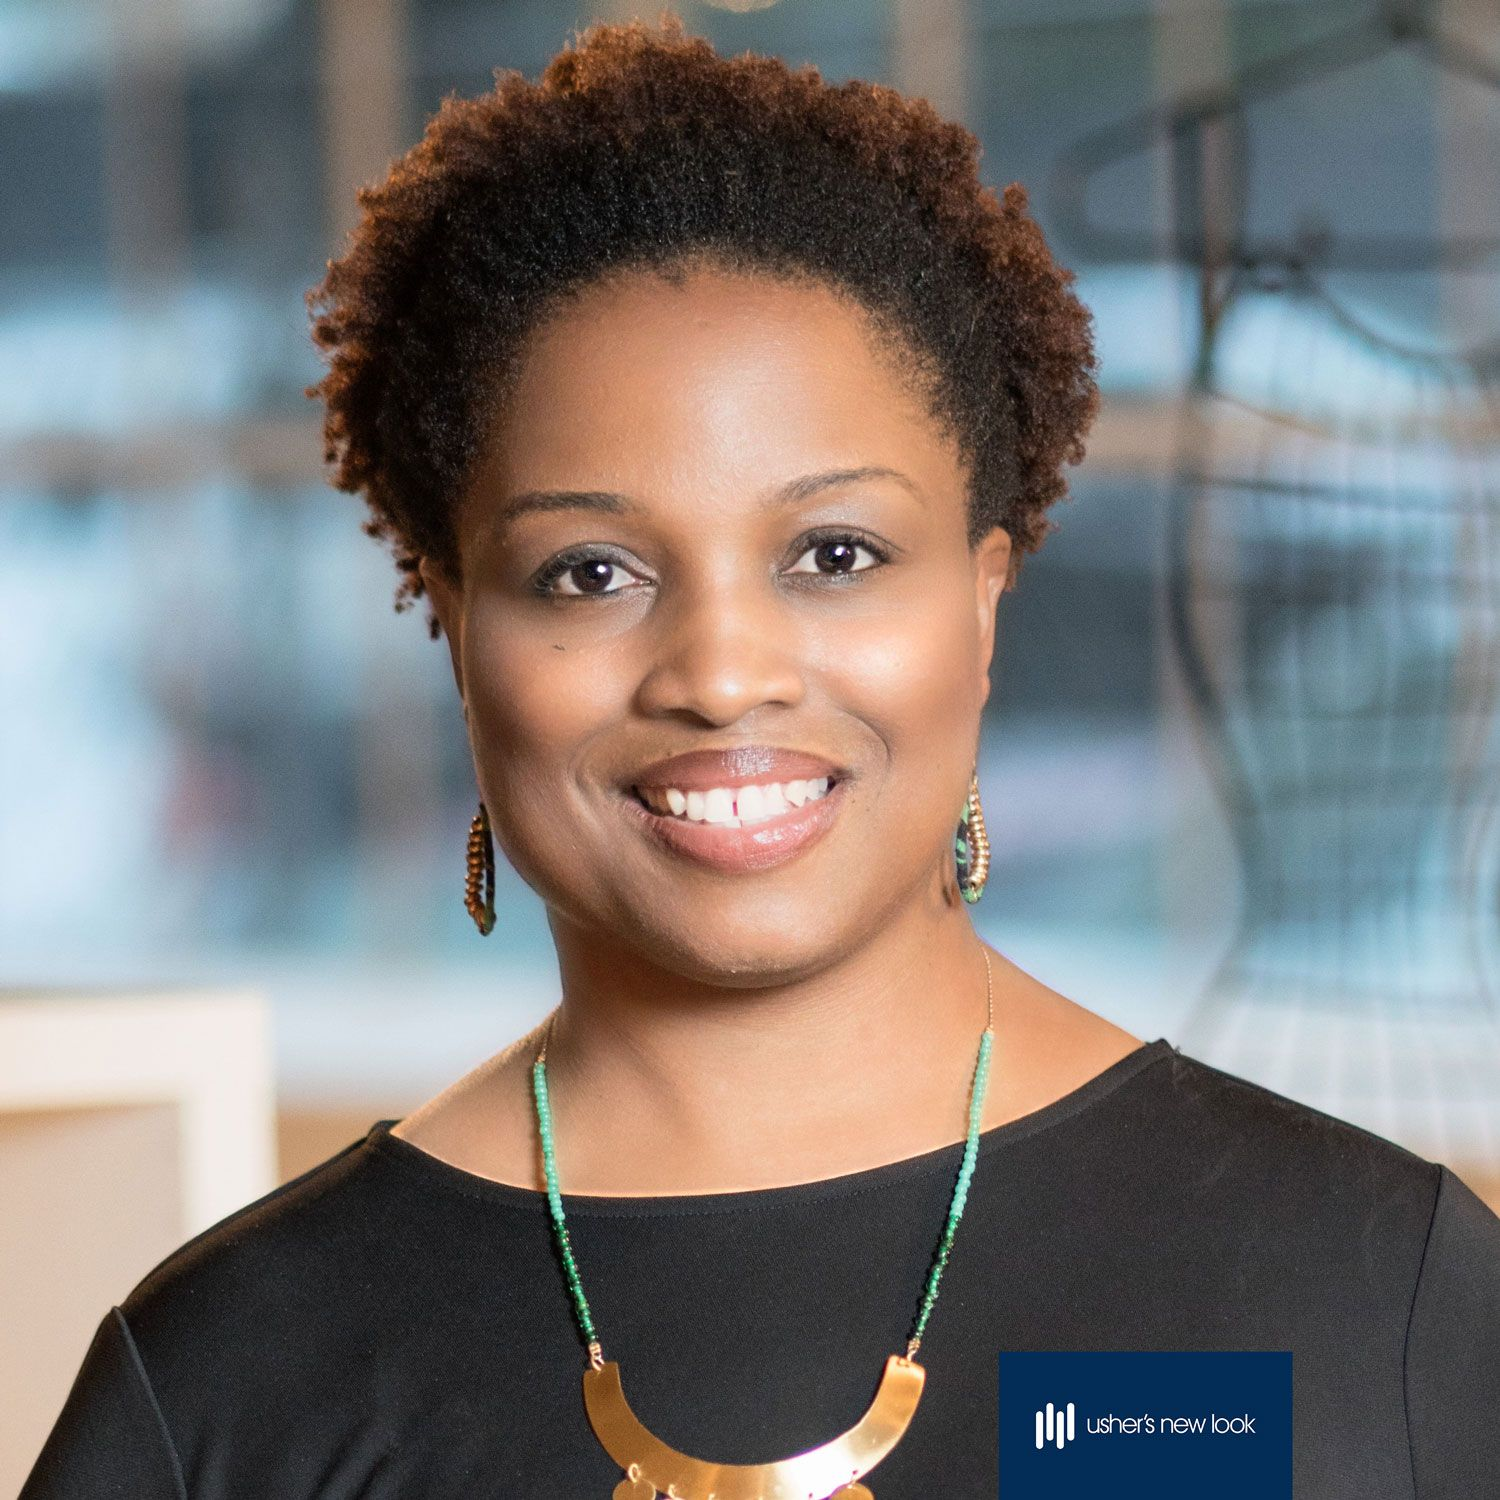 Careshia Moore, President and CEO of Ushers New Look – Disruptivator Summit